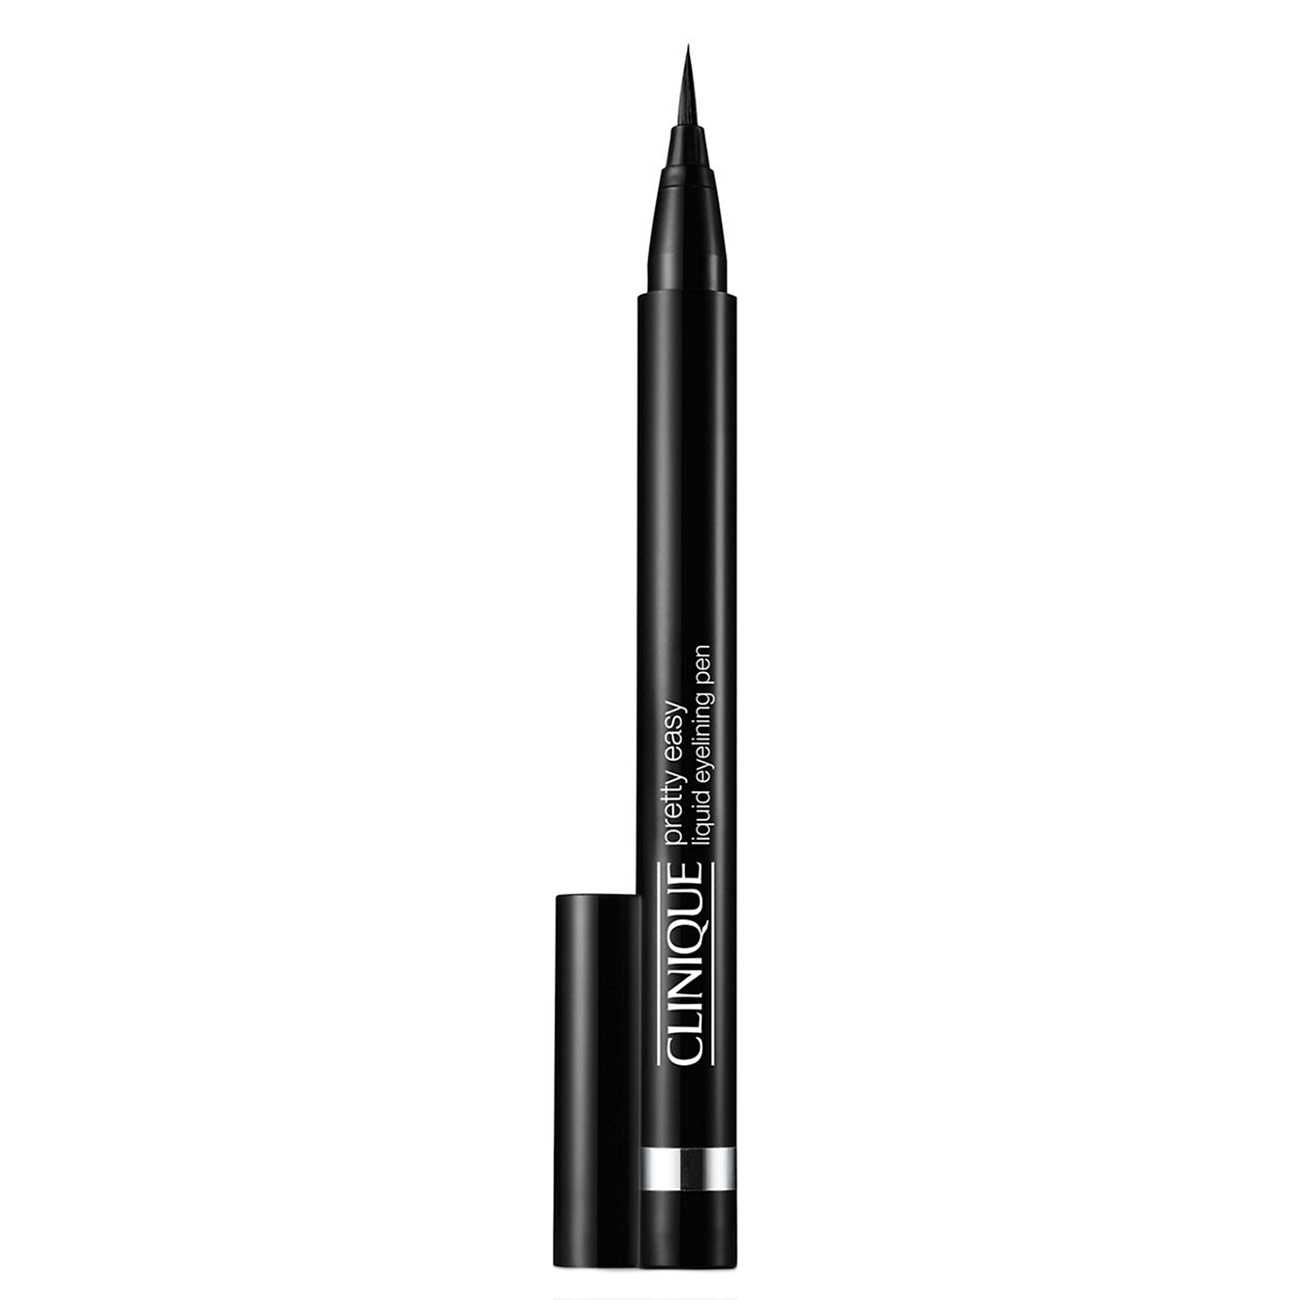 PRETTY EASY LIQUID EYELINING PEN 10 ML imagine produs